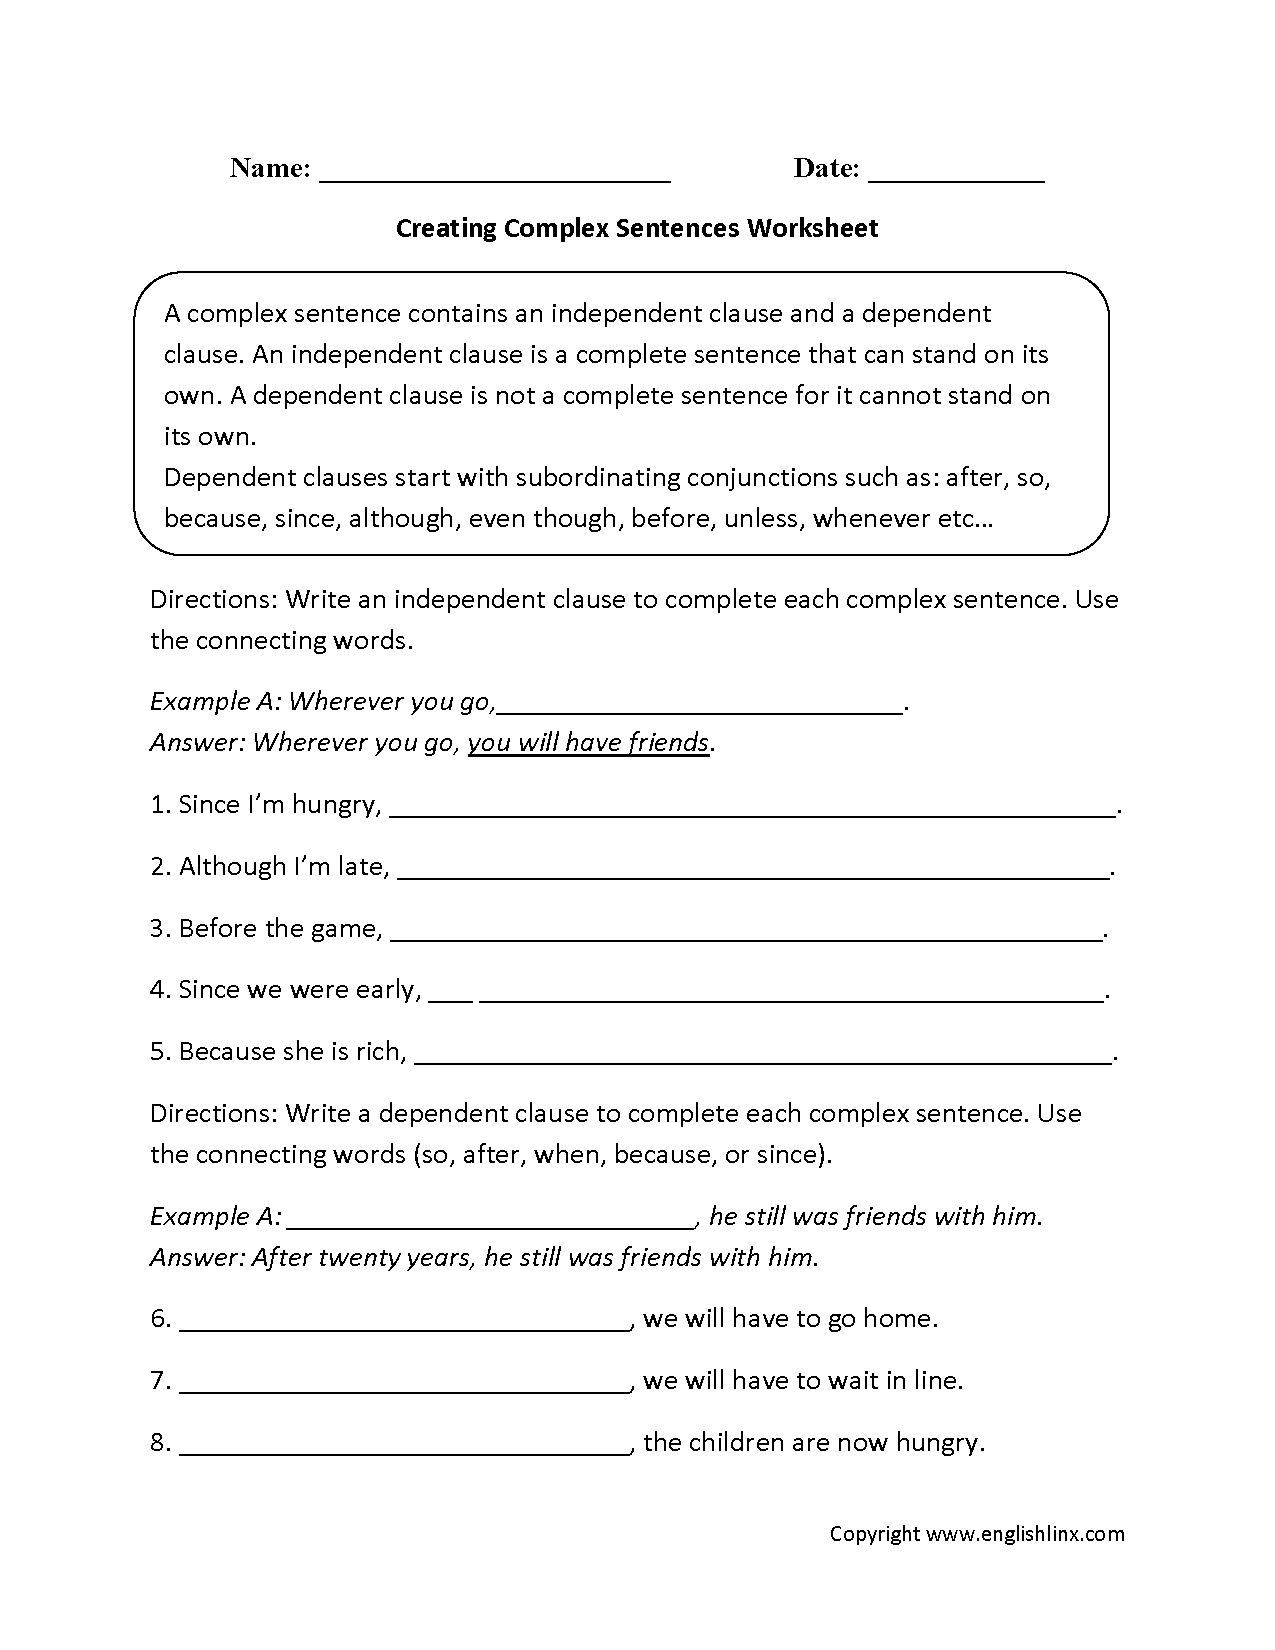 worksheet Create Worksheets sentences worksheets complex creating worksheet